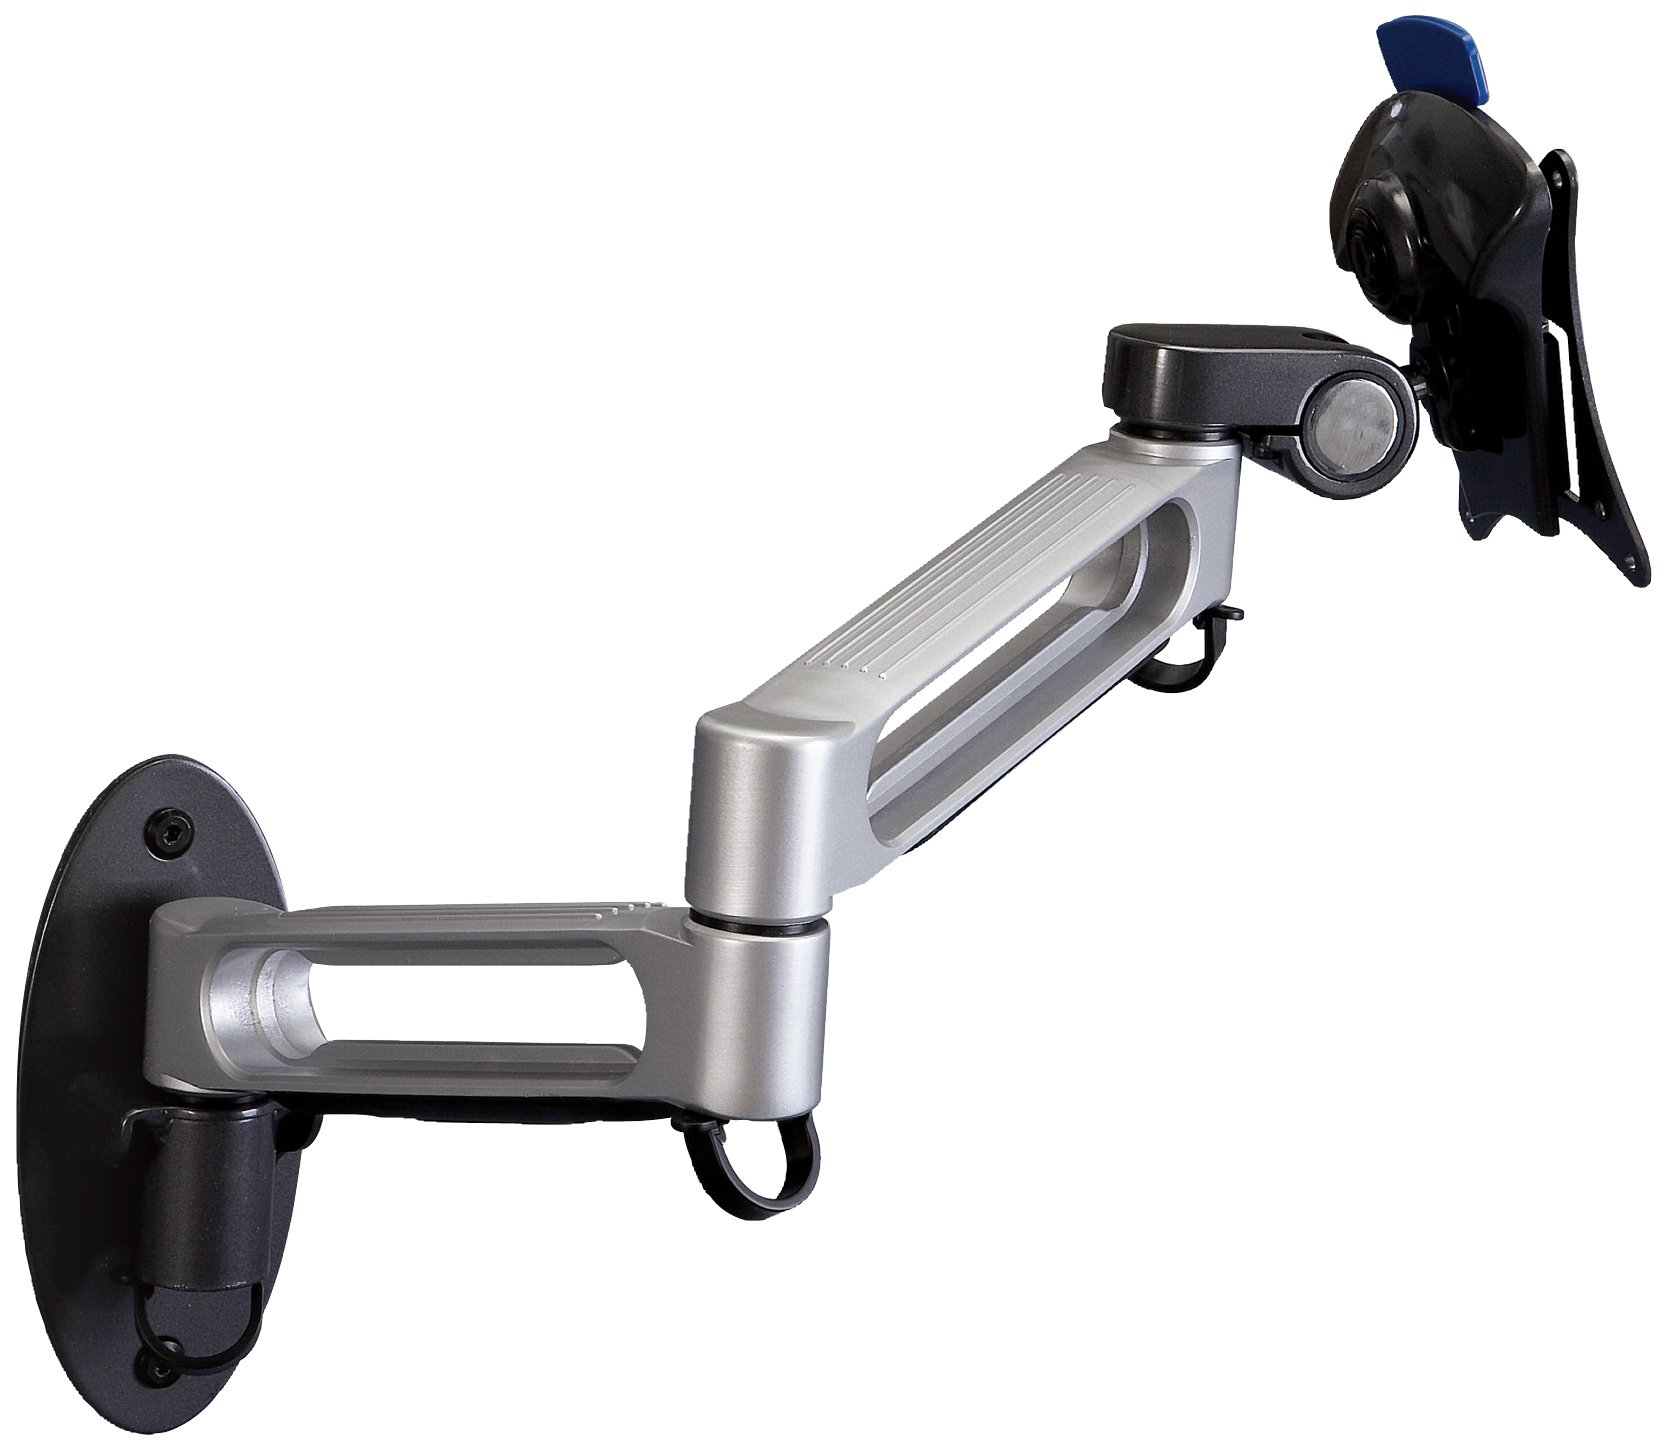 Balt Dual Arm Wall Mount for Flat Panel Monitors, Capacity up to 23'' and 30 lbs (66582)